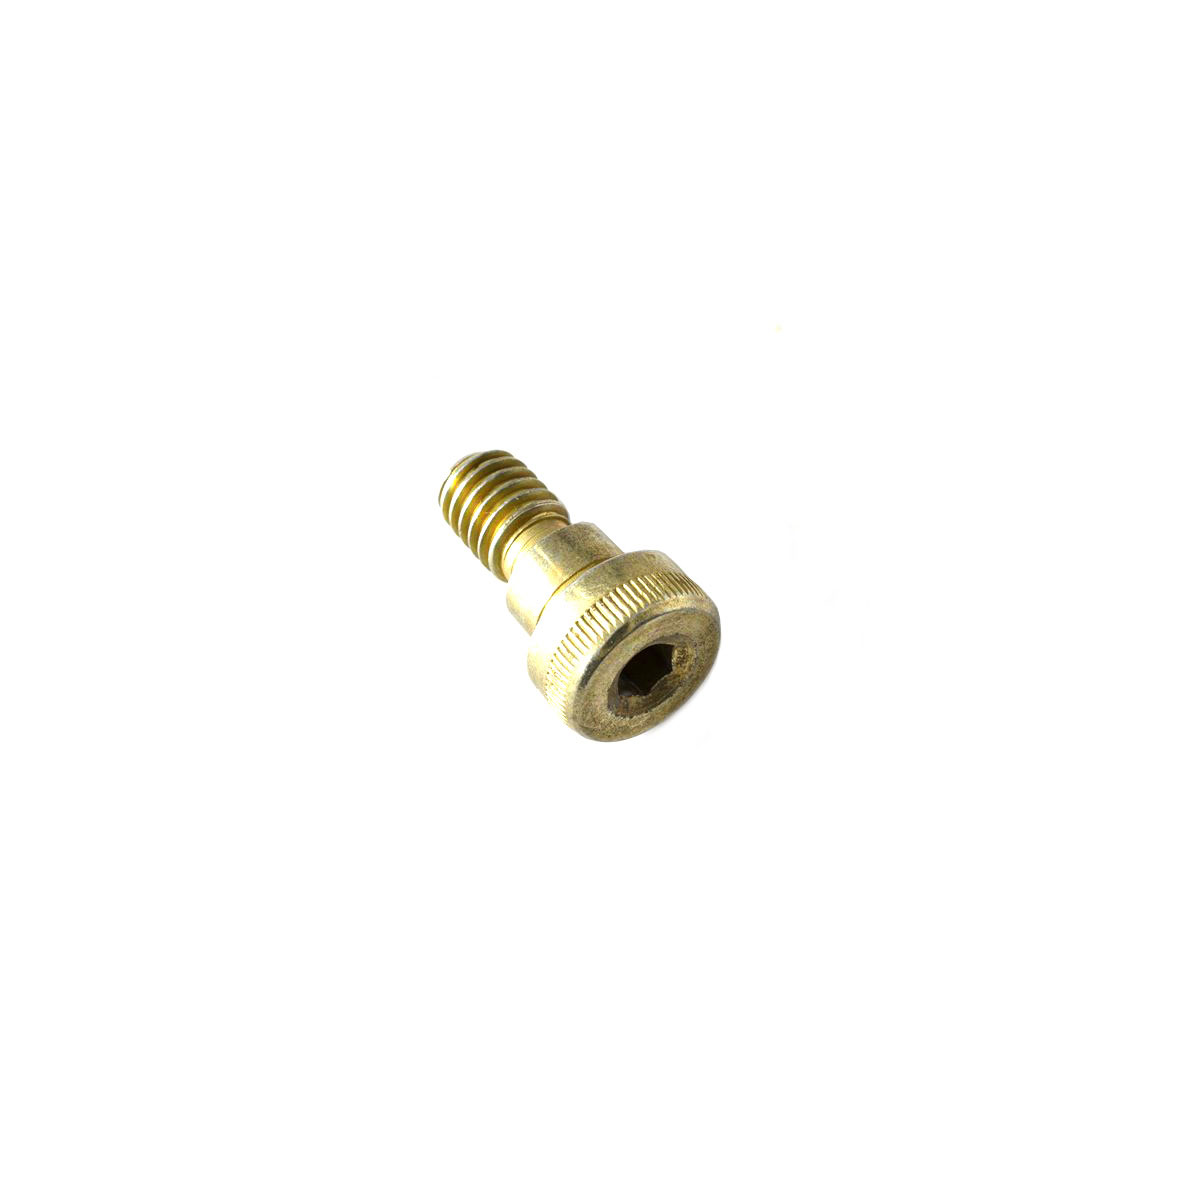 Scag Shoulder Bolt 3/8 x .250 04009-15